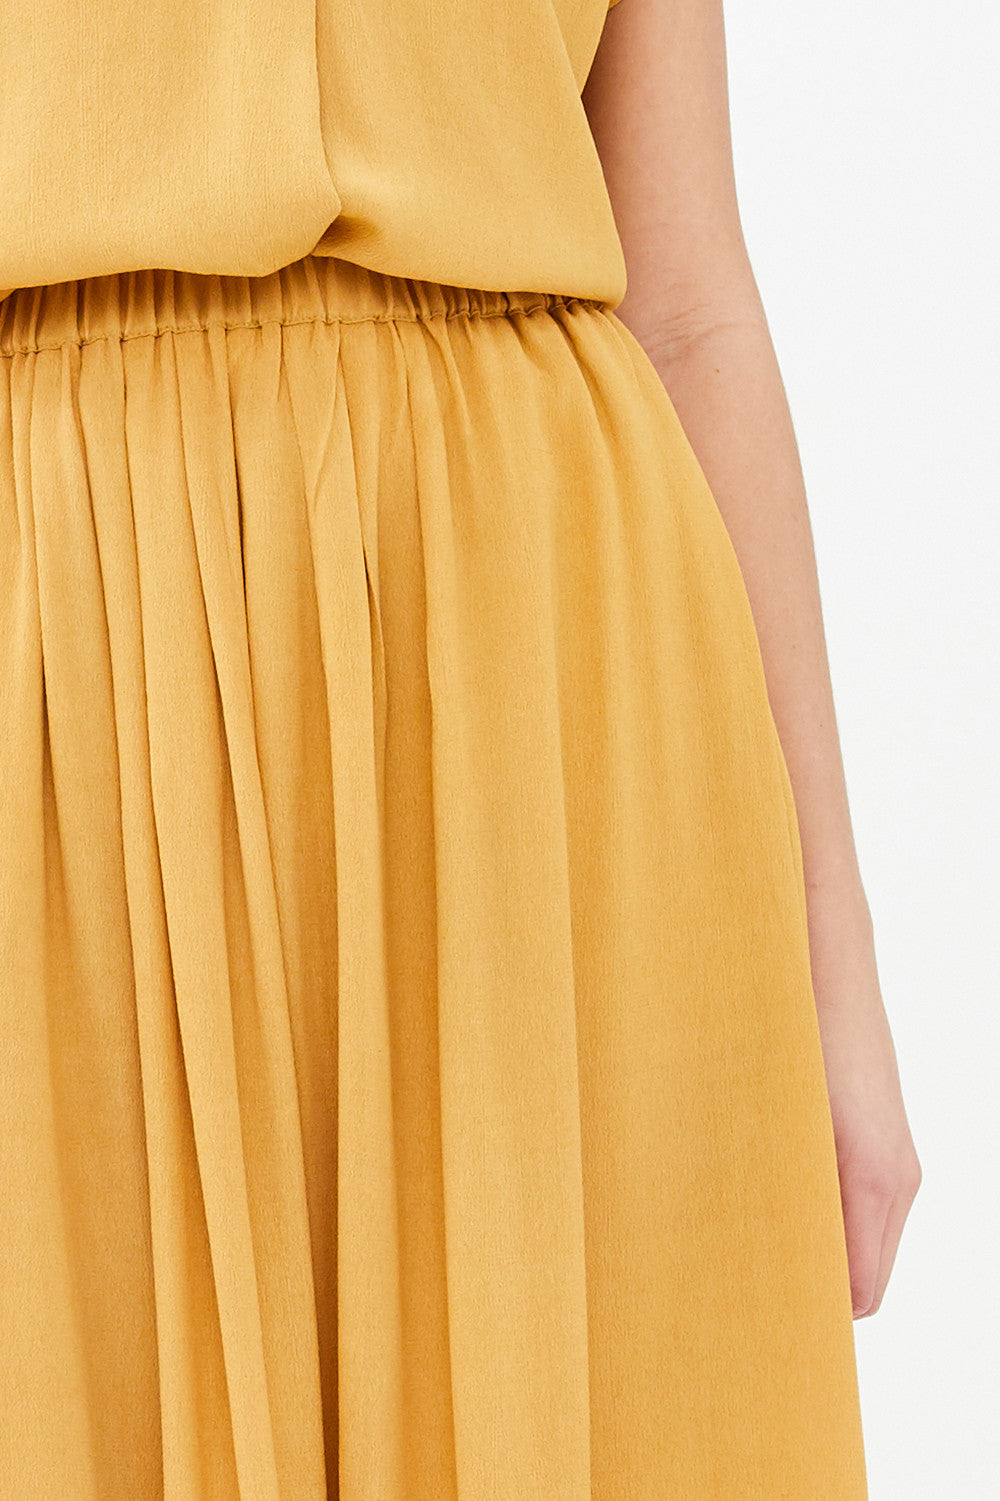 By-Bar - linde skirt yellow straw